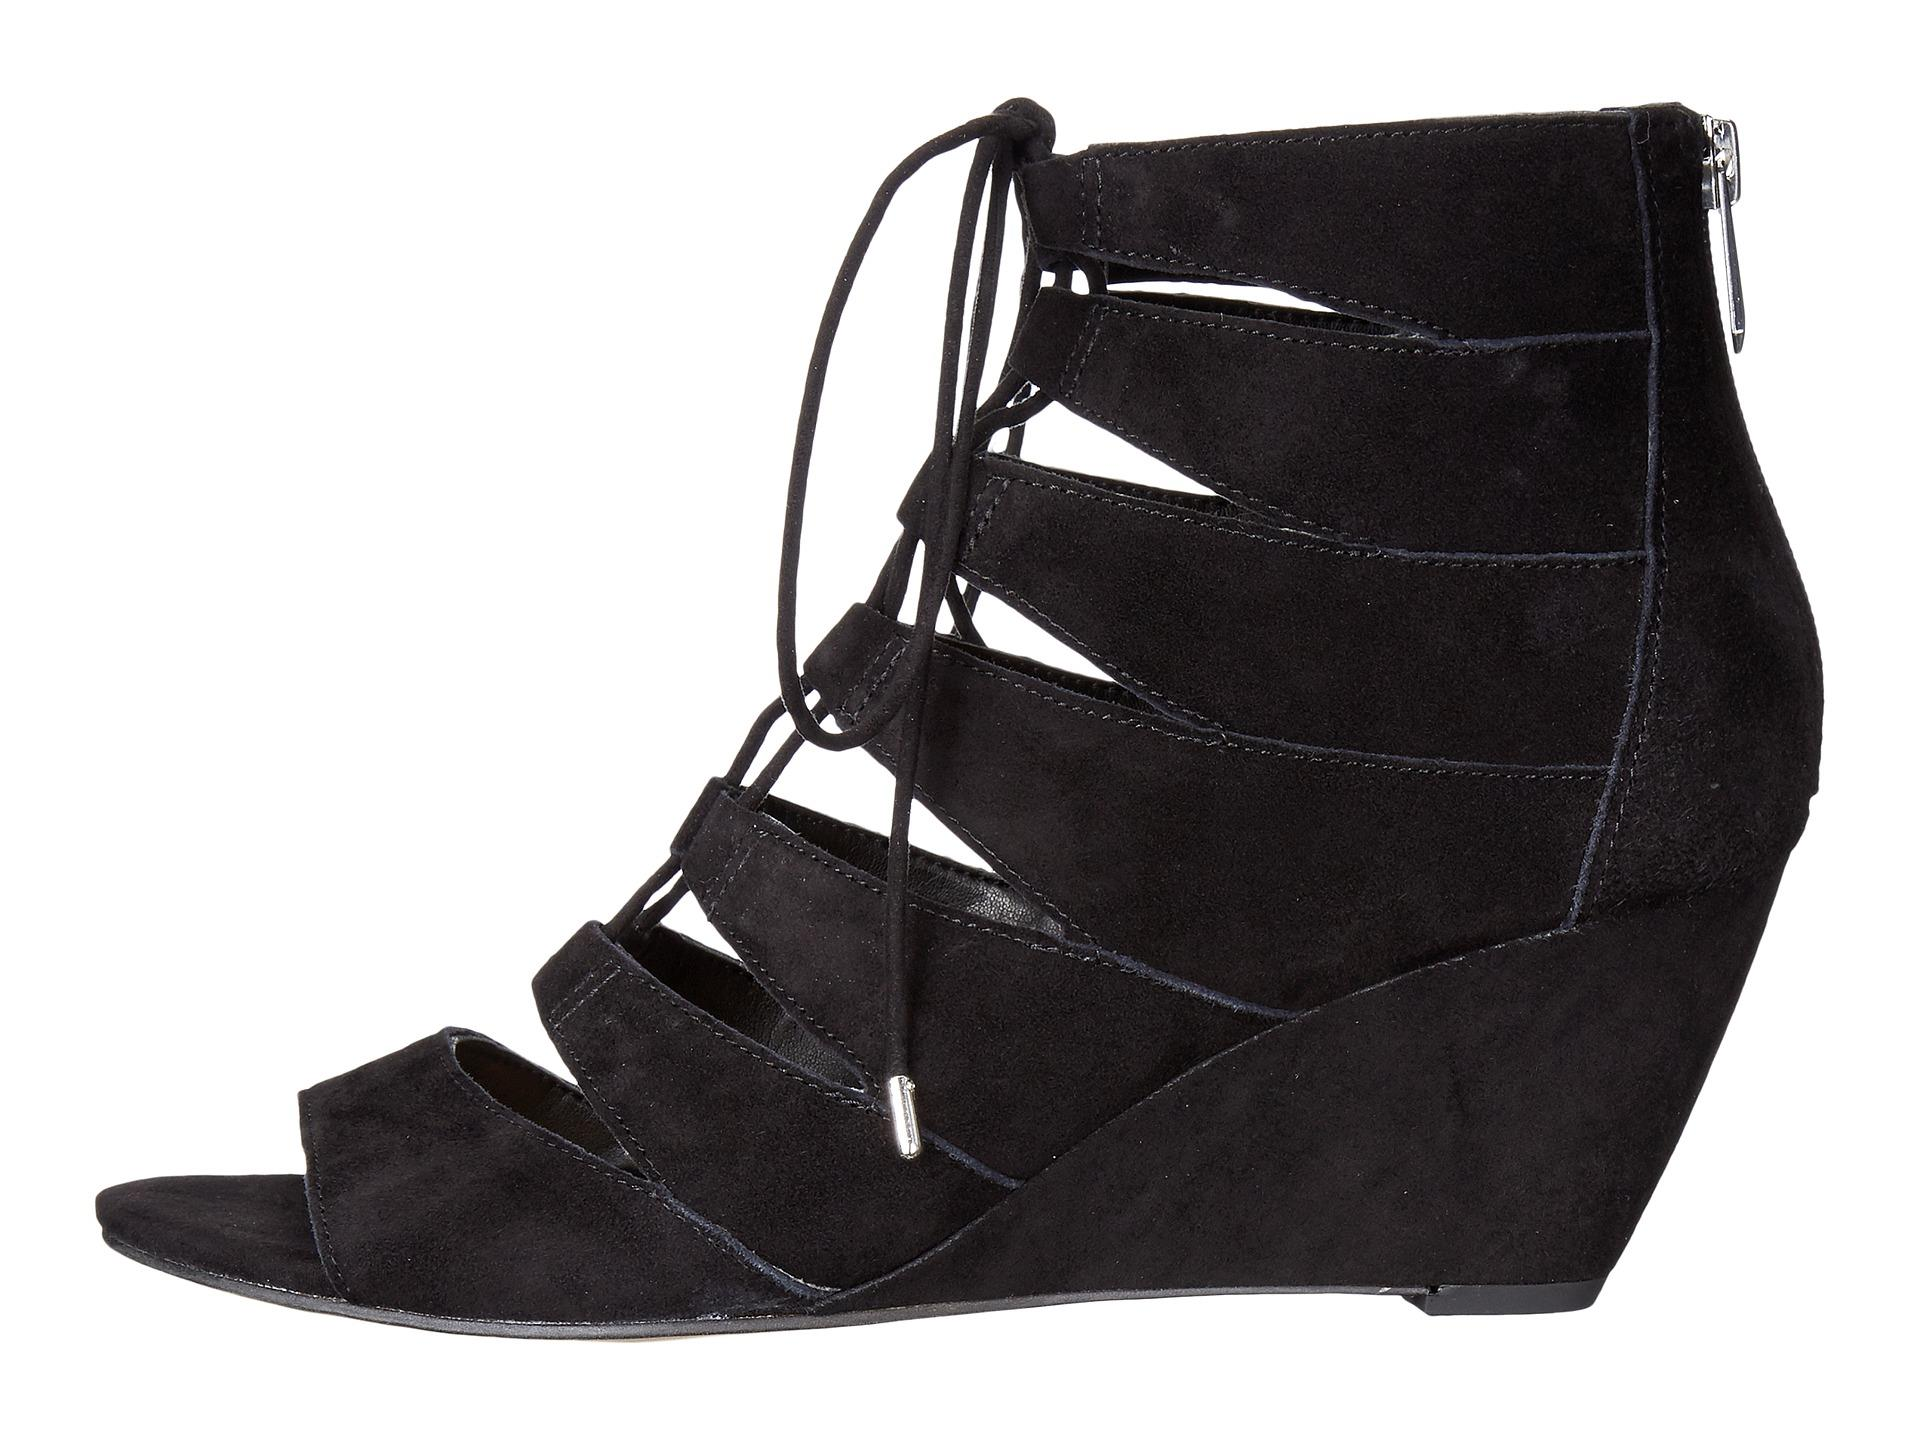 SAM-EDELMAN-WOMENS-SANTINA-GLADIATOR-SANDALS-LEATHER-SUEDE-WEDGE-SHOES-BLACK-NEW